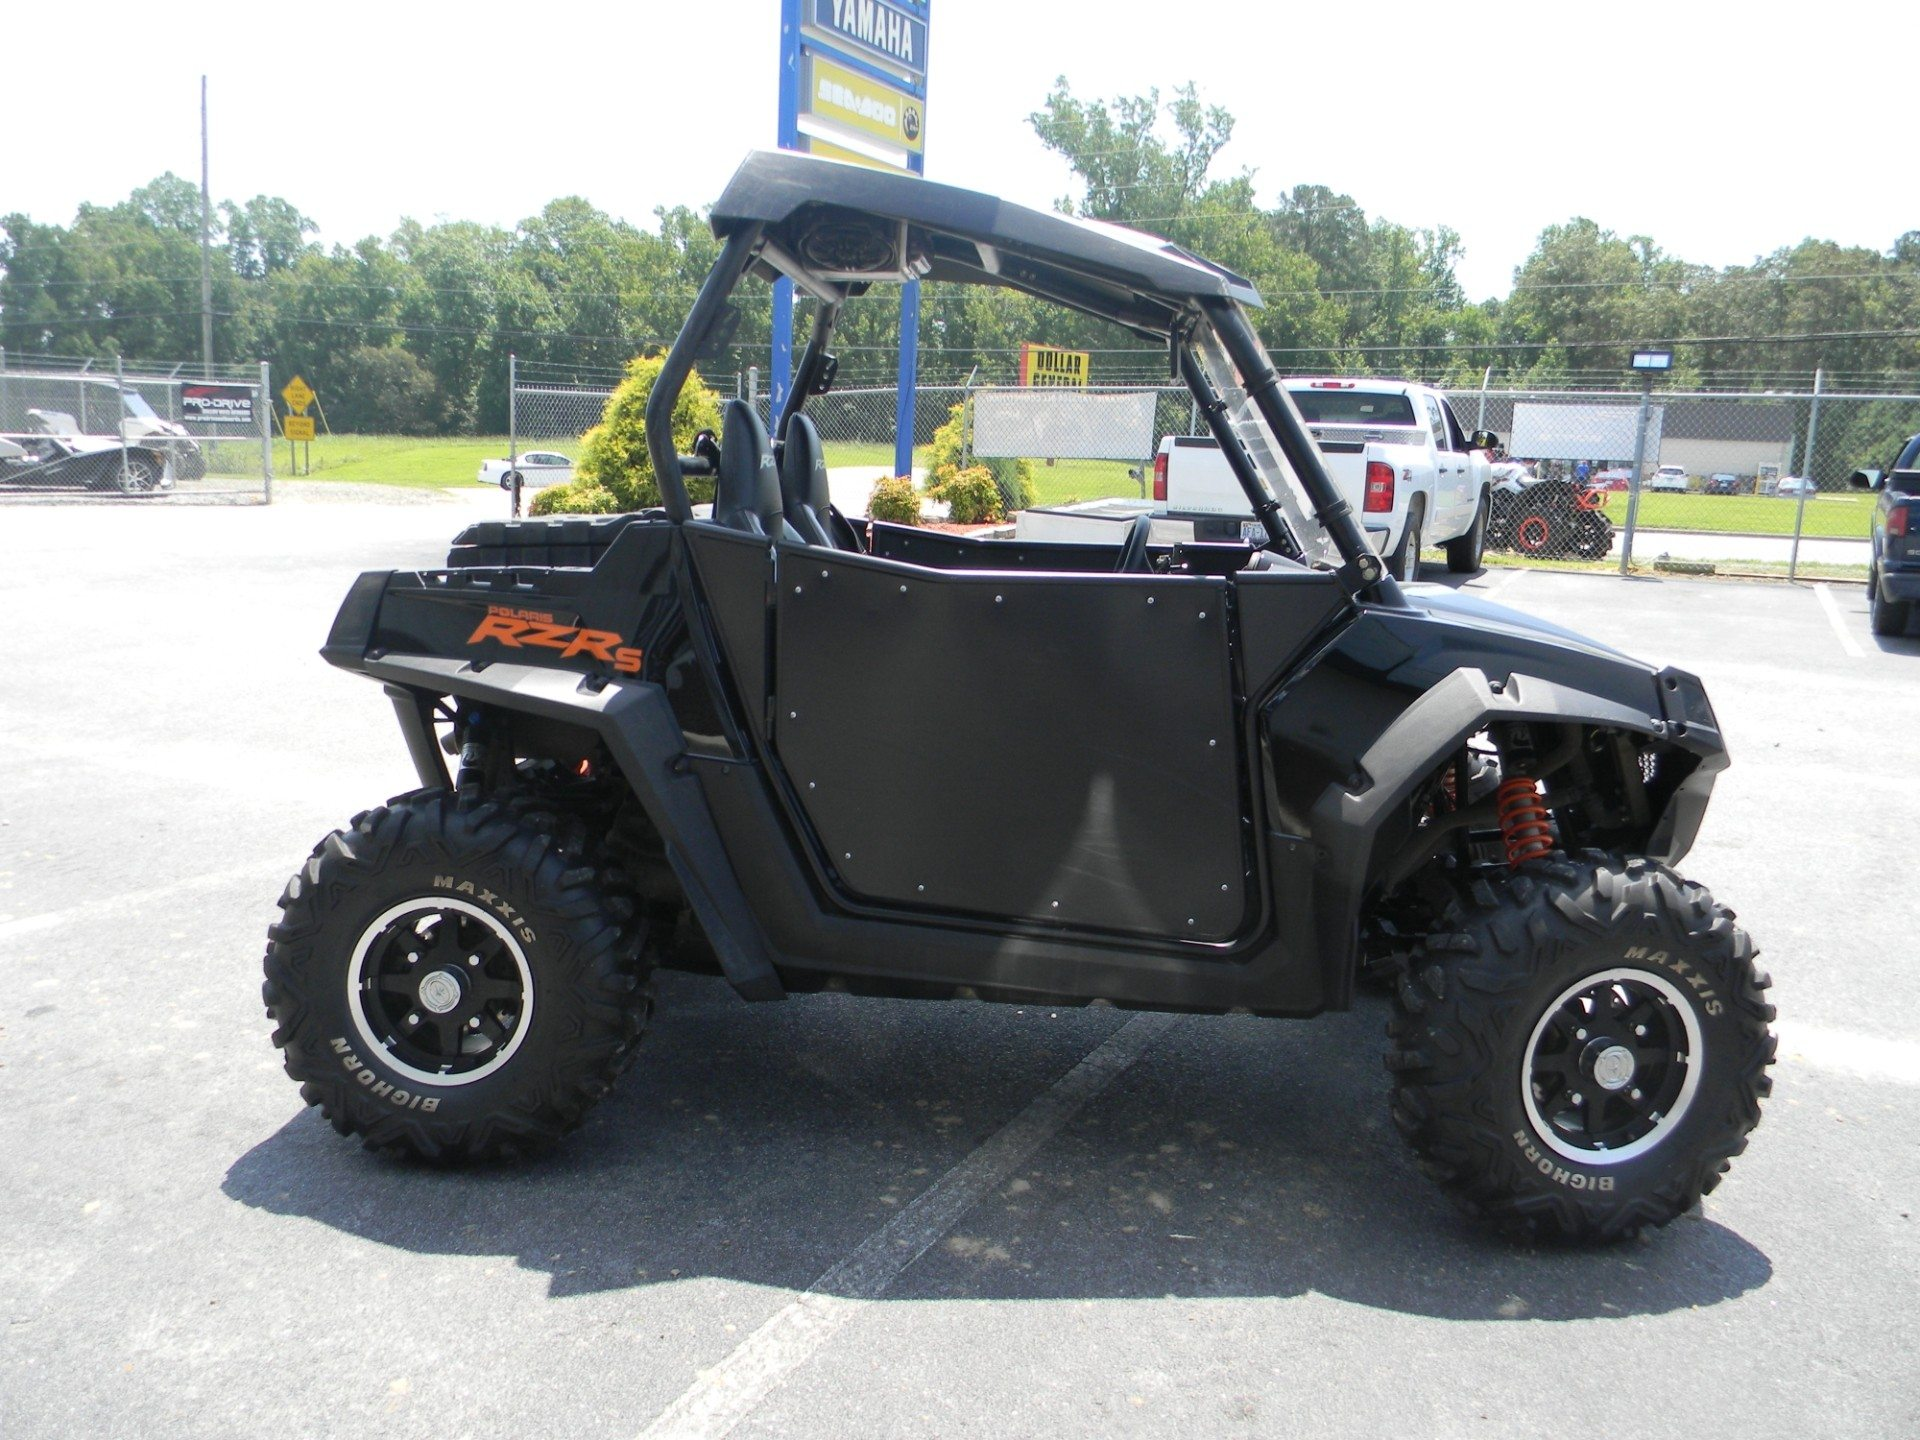 2013 polaris rzr s 800 le for sale greenville nc 541579. Black Bedroom Furniture Sets. Home Design Ideas